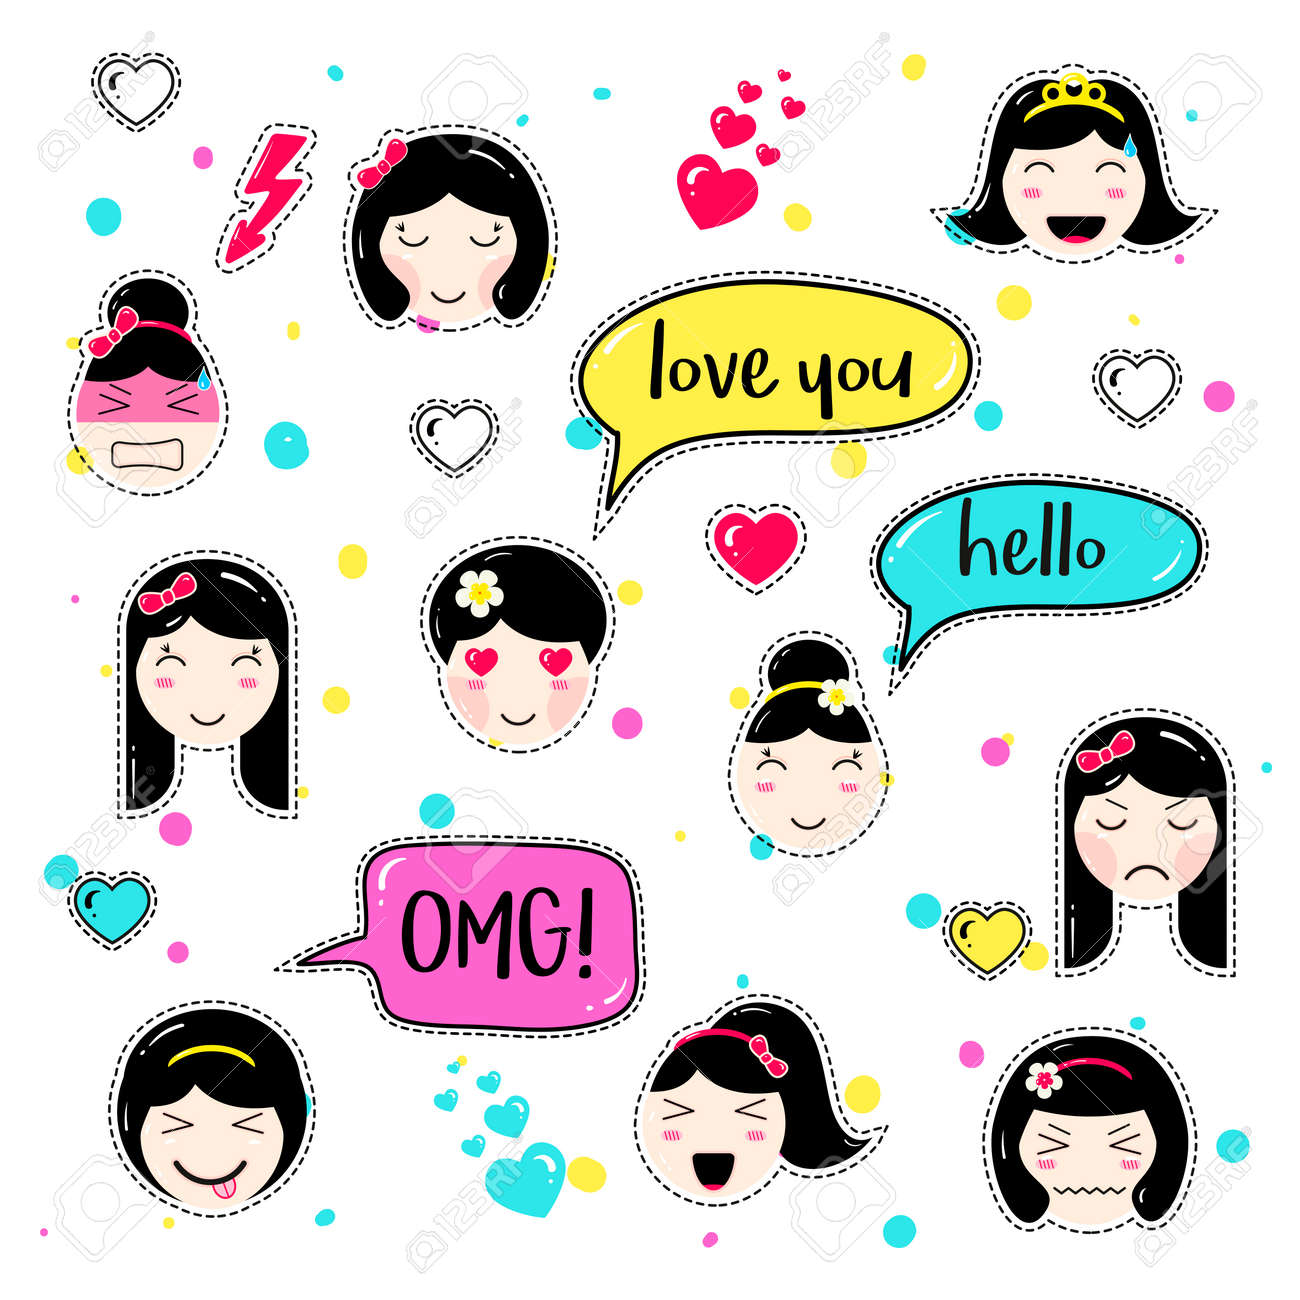 Girl emoji with different emotions and hairstyles  Kawaii emoticons,